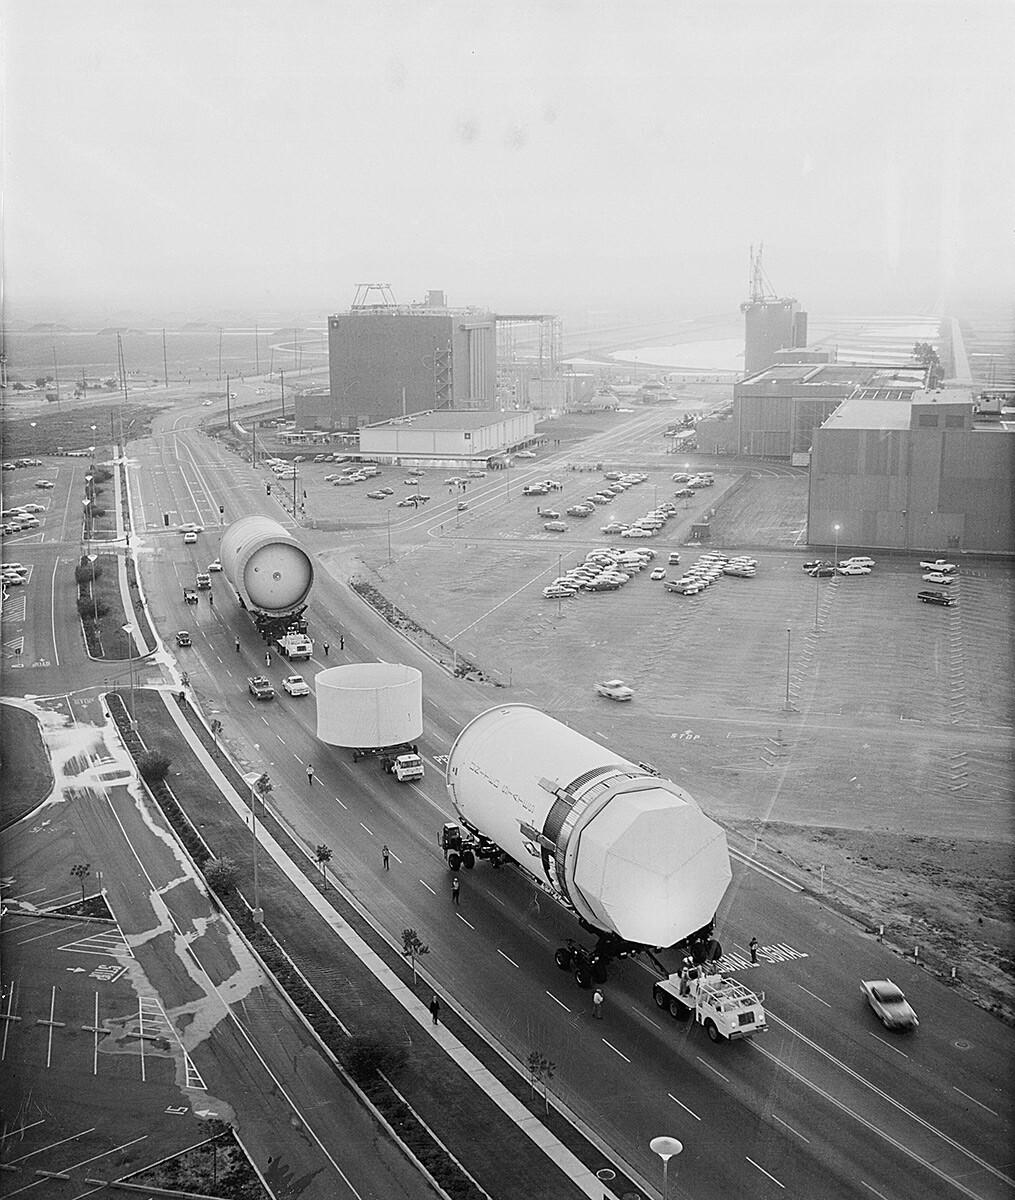 Parts of Saturn V's second rocket stage, North American Rockwell's S-II, being trucked along Seal Beach Boulevard. | Courtesy of SealBeachHistory.com